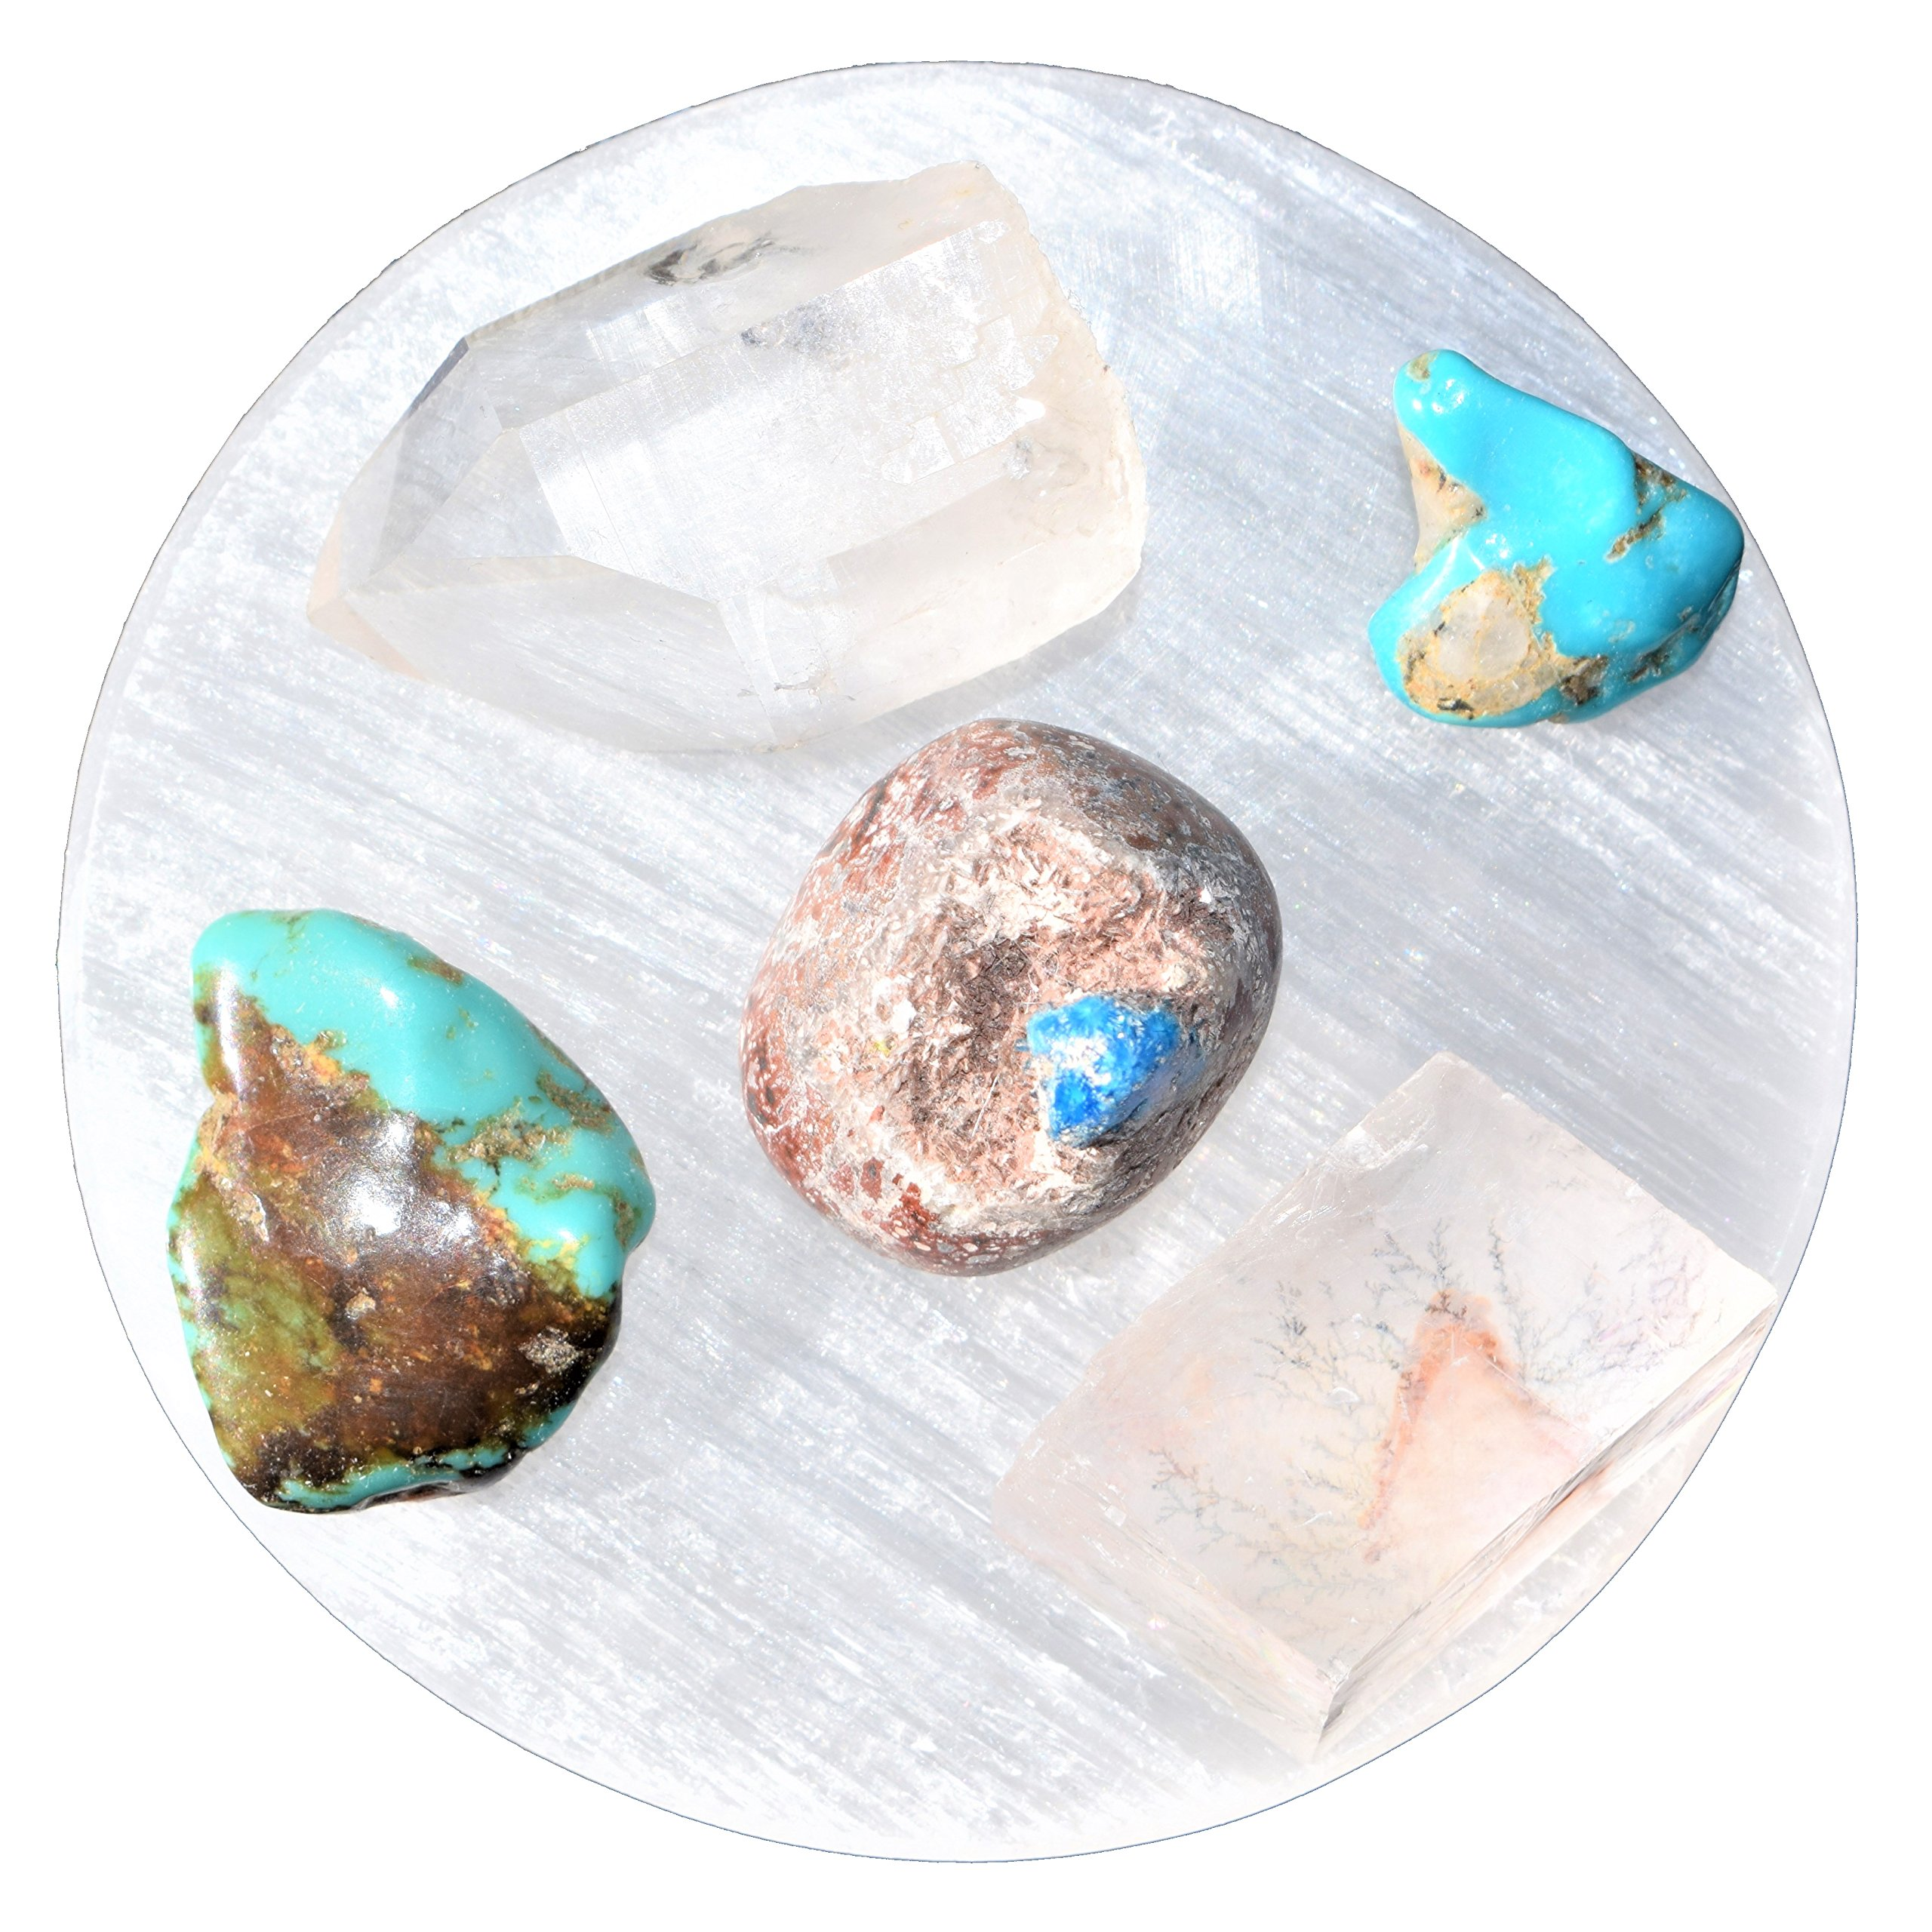 CHARGED 3'' Selenite Disc Plate - Polished Flat Crystal Charging Station POWERFUL HEALING ENERGY REIKI by ZENERGY GEMS